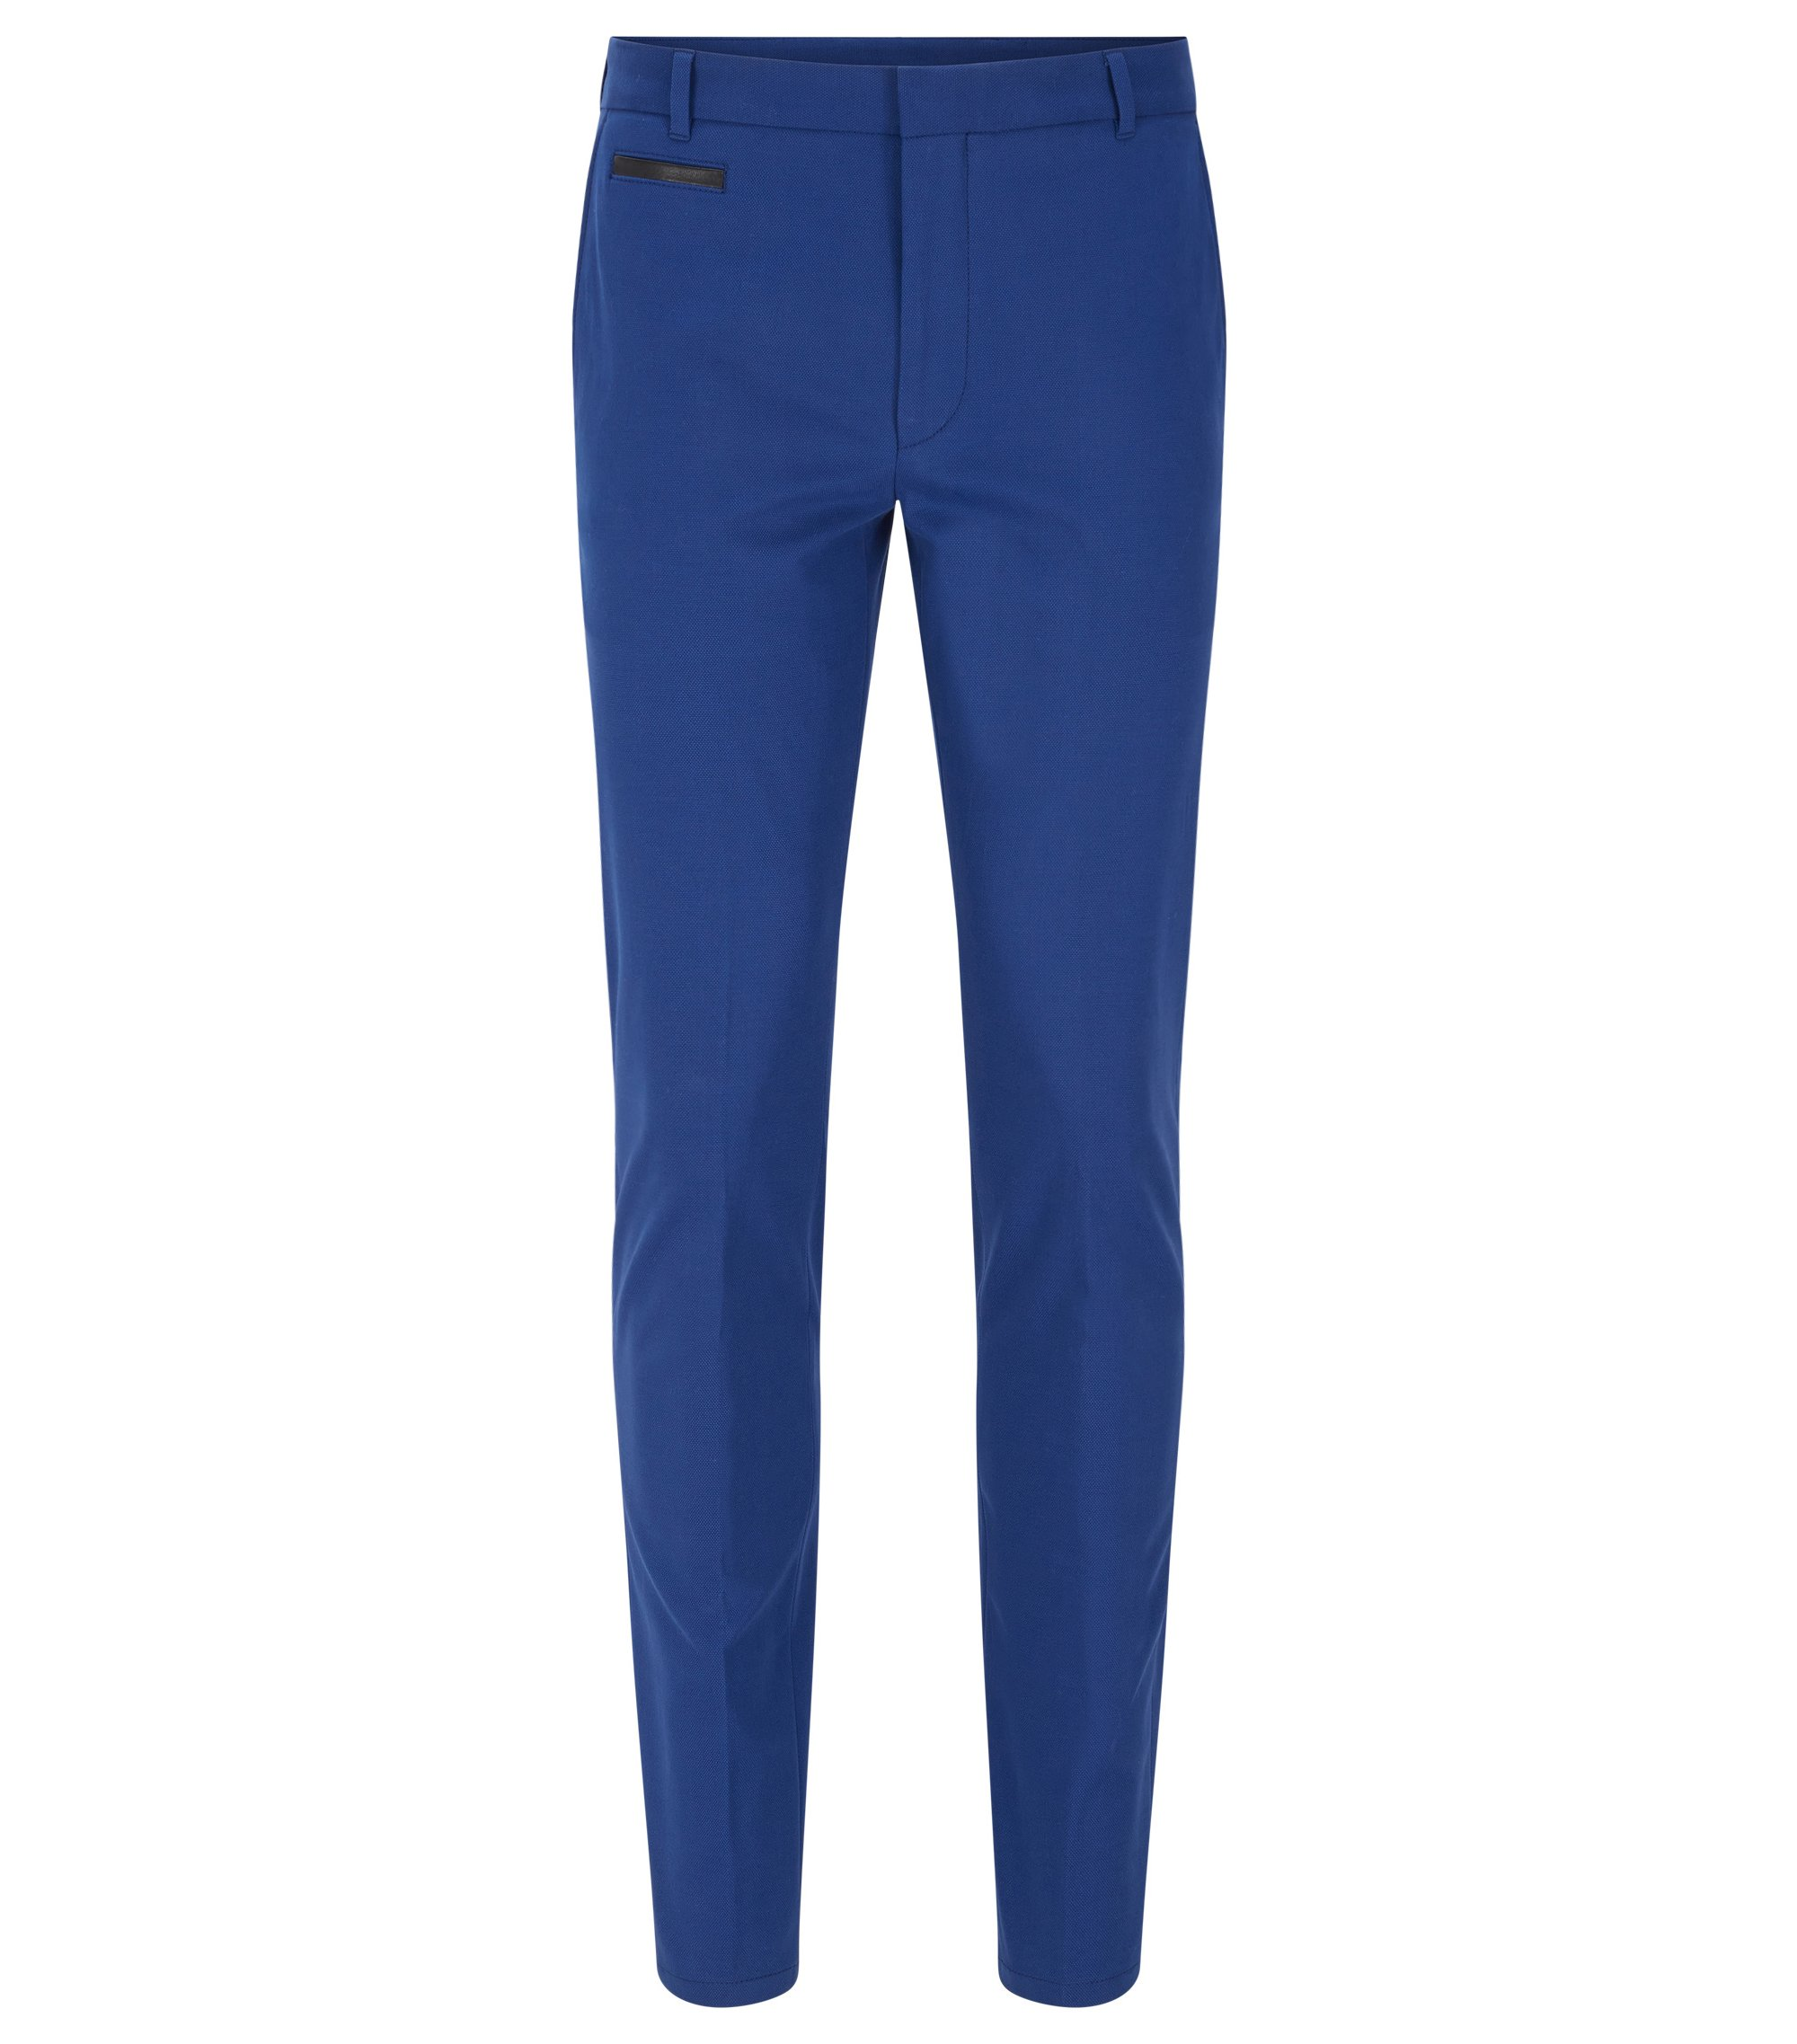 Extra-slim-fit trousers in two-tone fabric, Open Blue